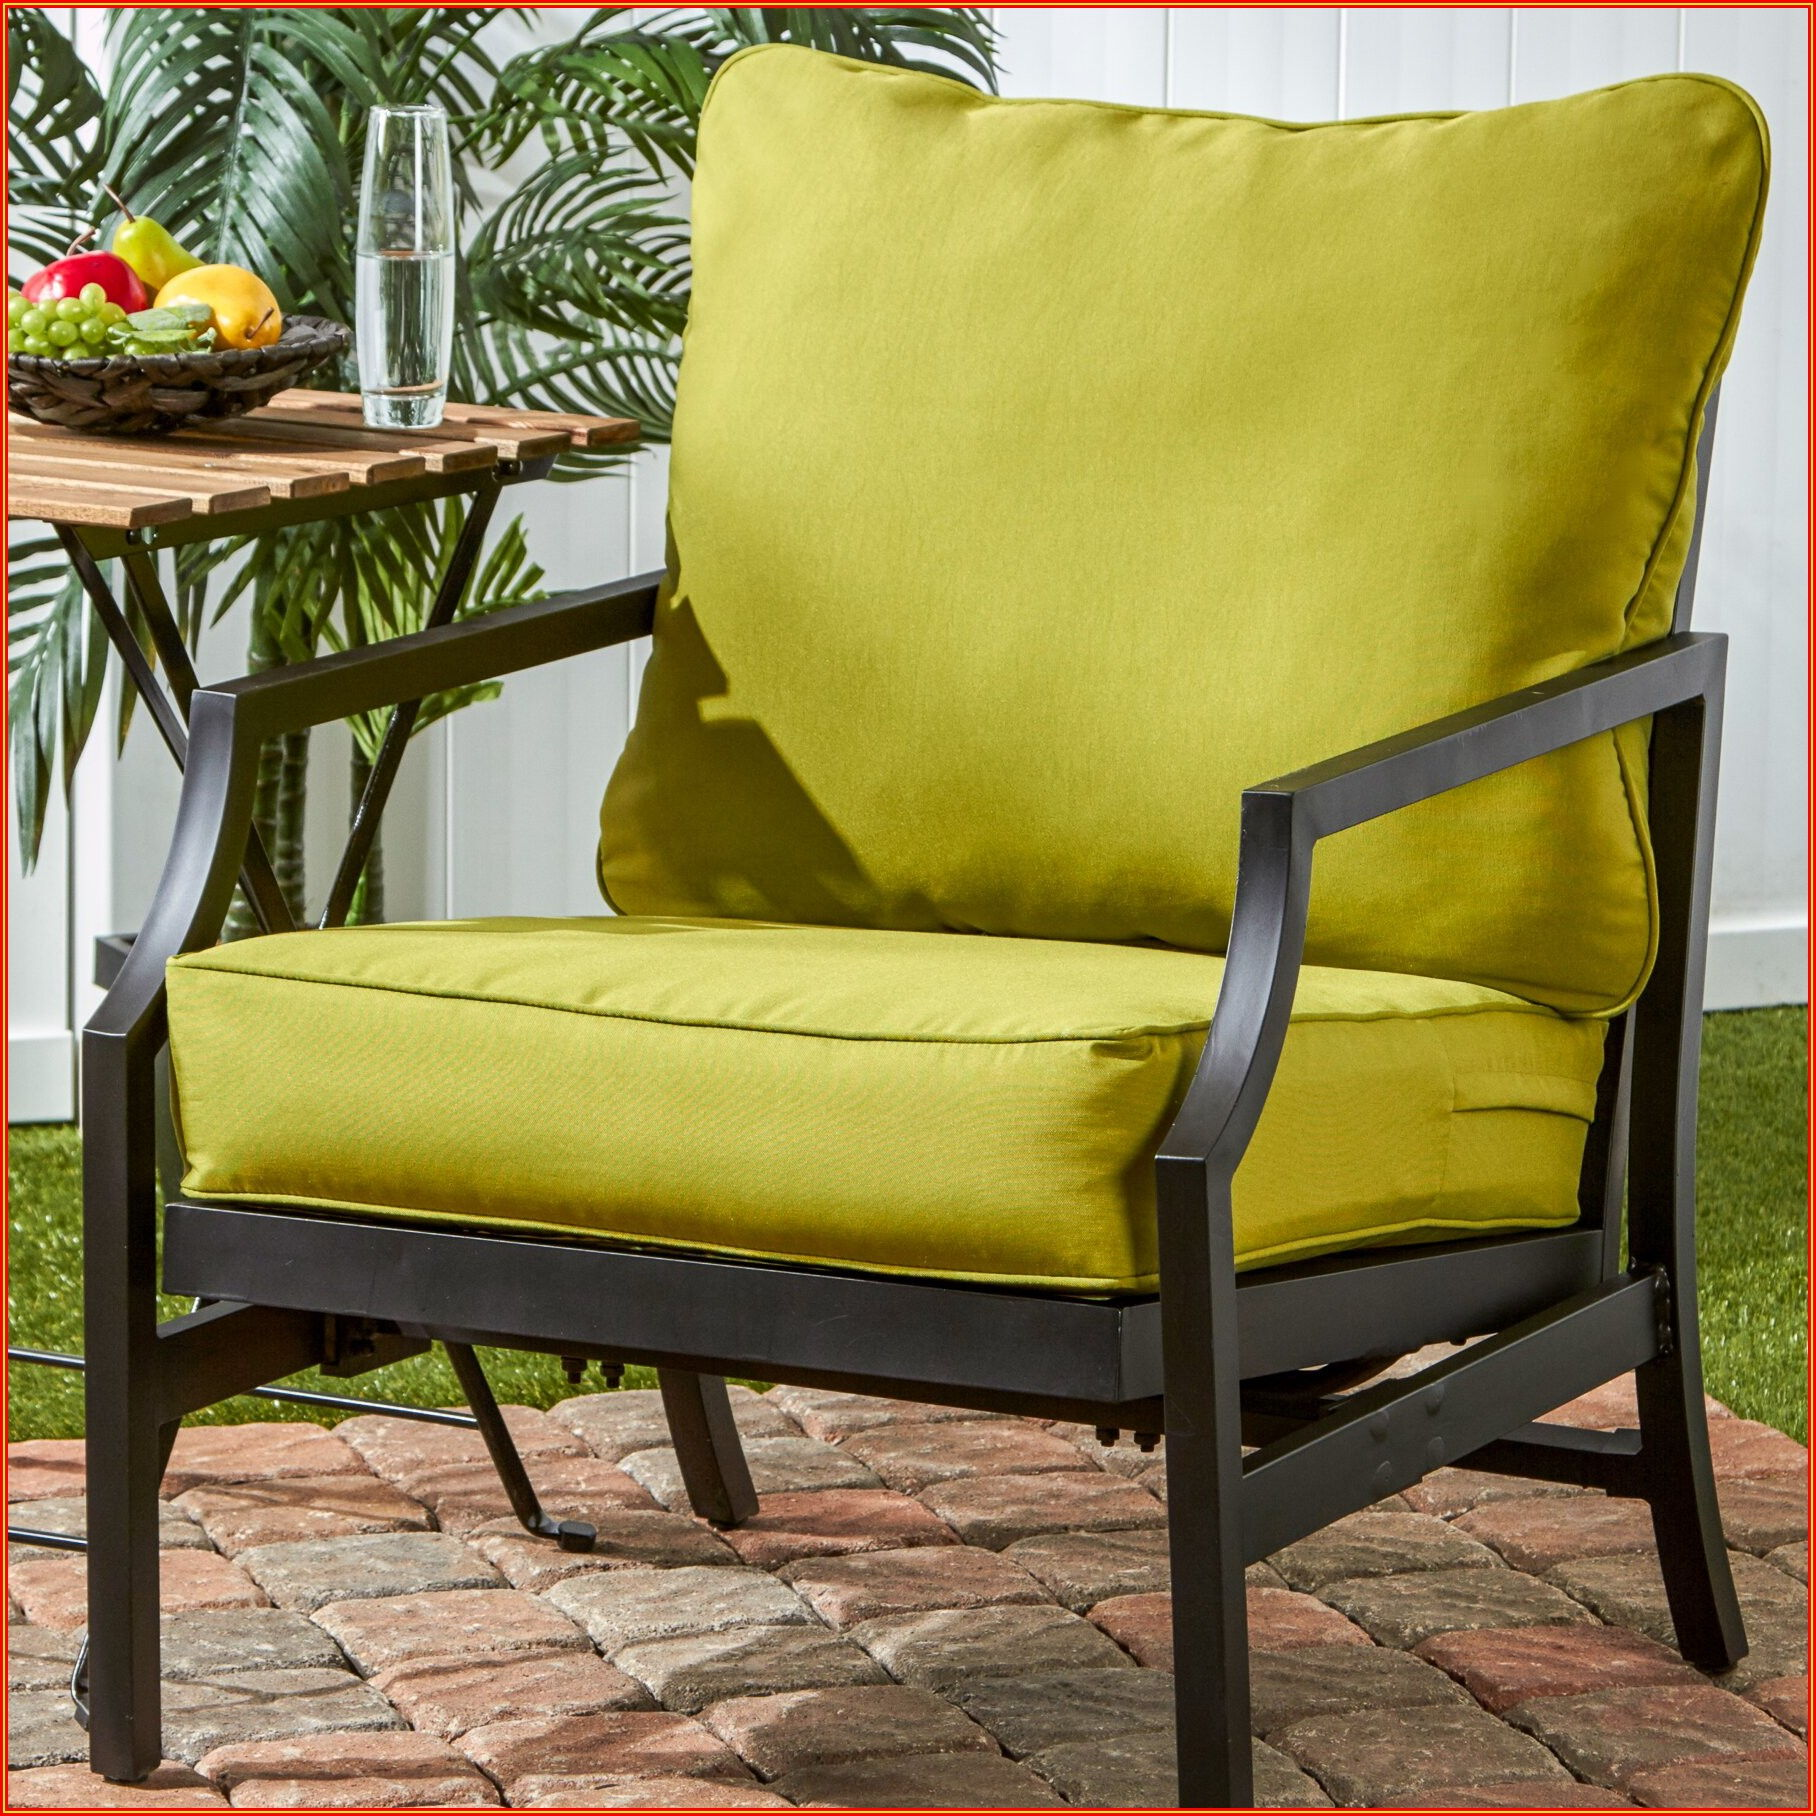 Patio Lounge Chairs With Cushions